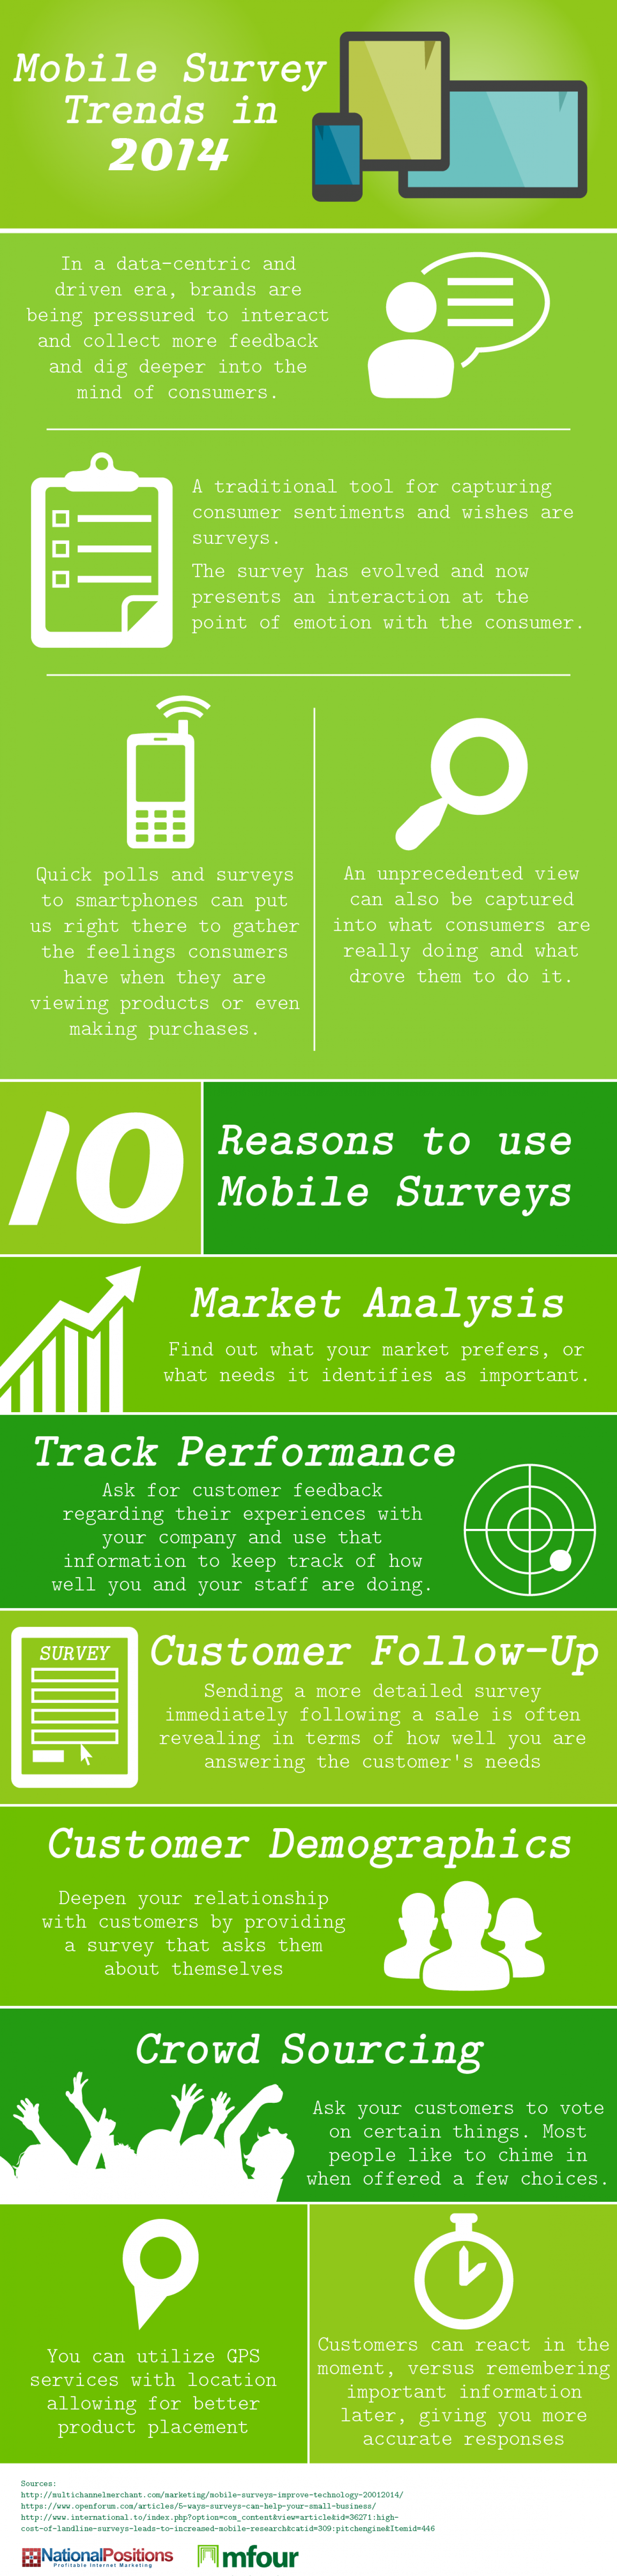 10 Reasons to use Mobile Surveys  Infographic